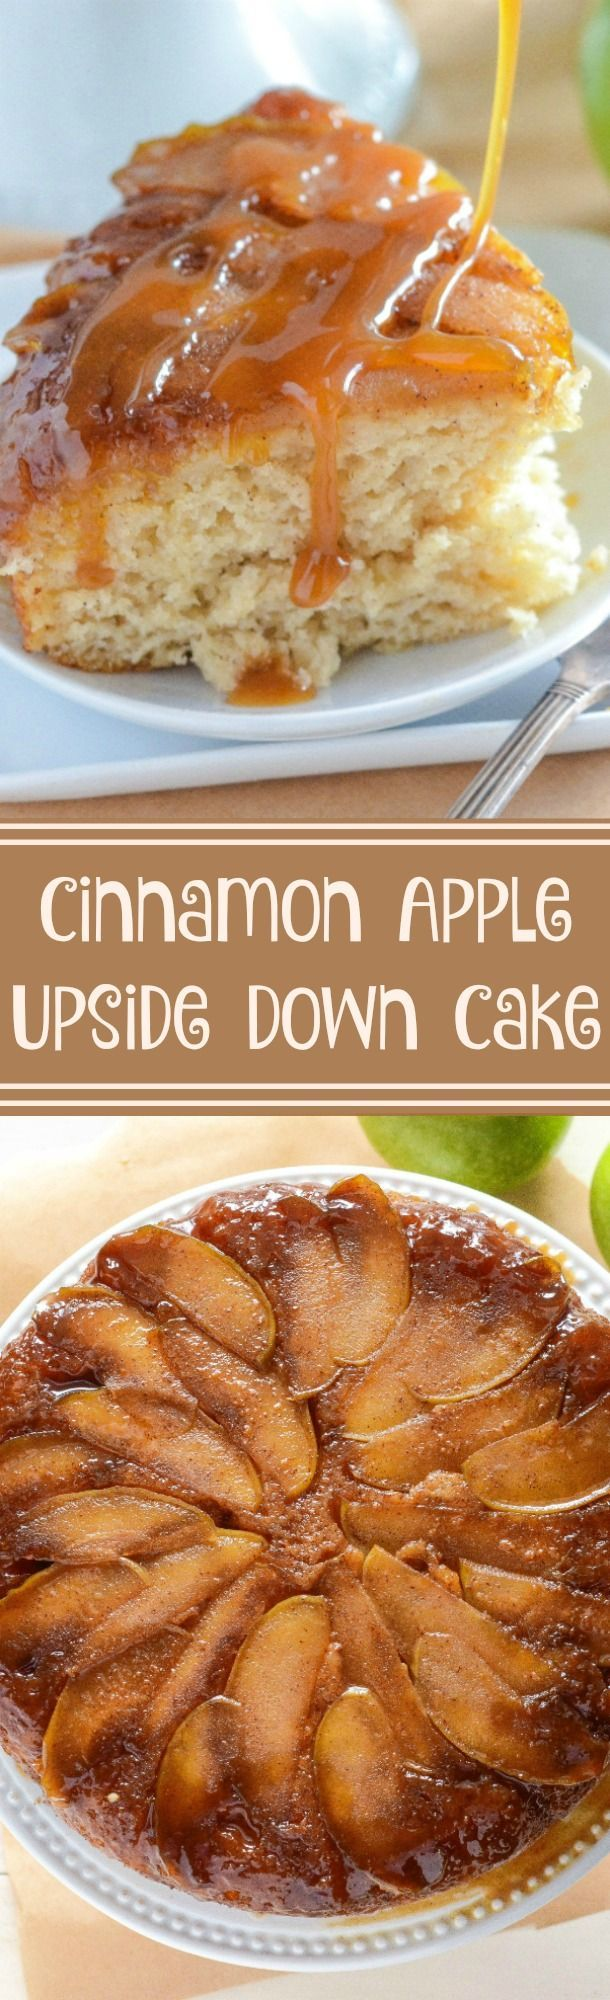 Upside Down Cake! Spiced brown sugar apples with a spiced sour cream ...